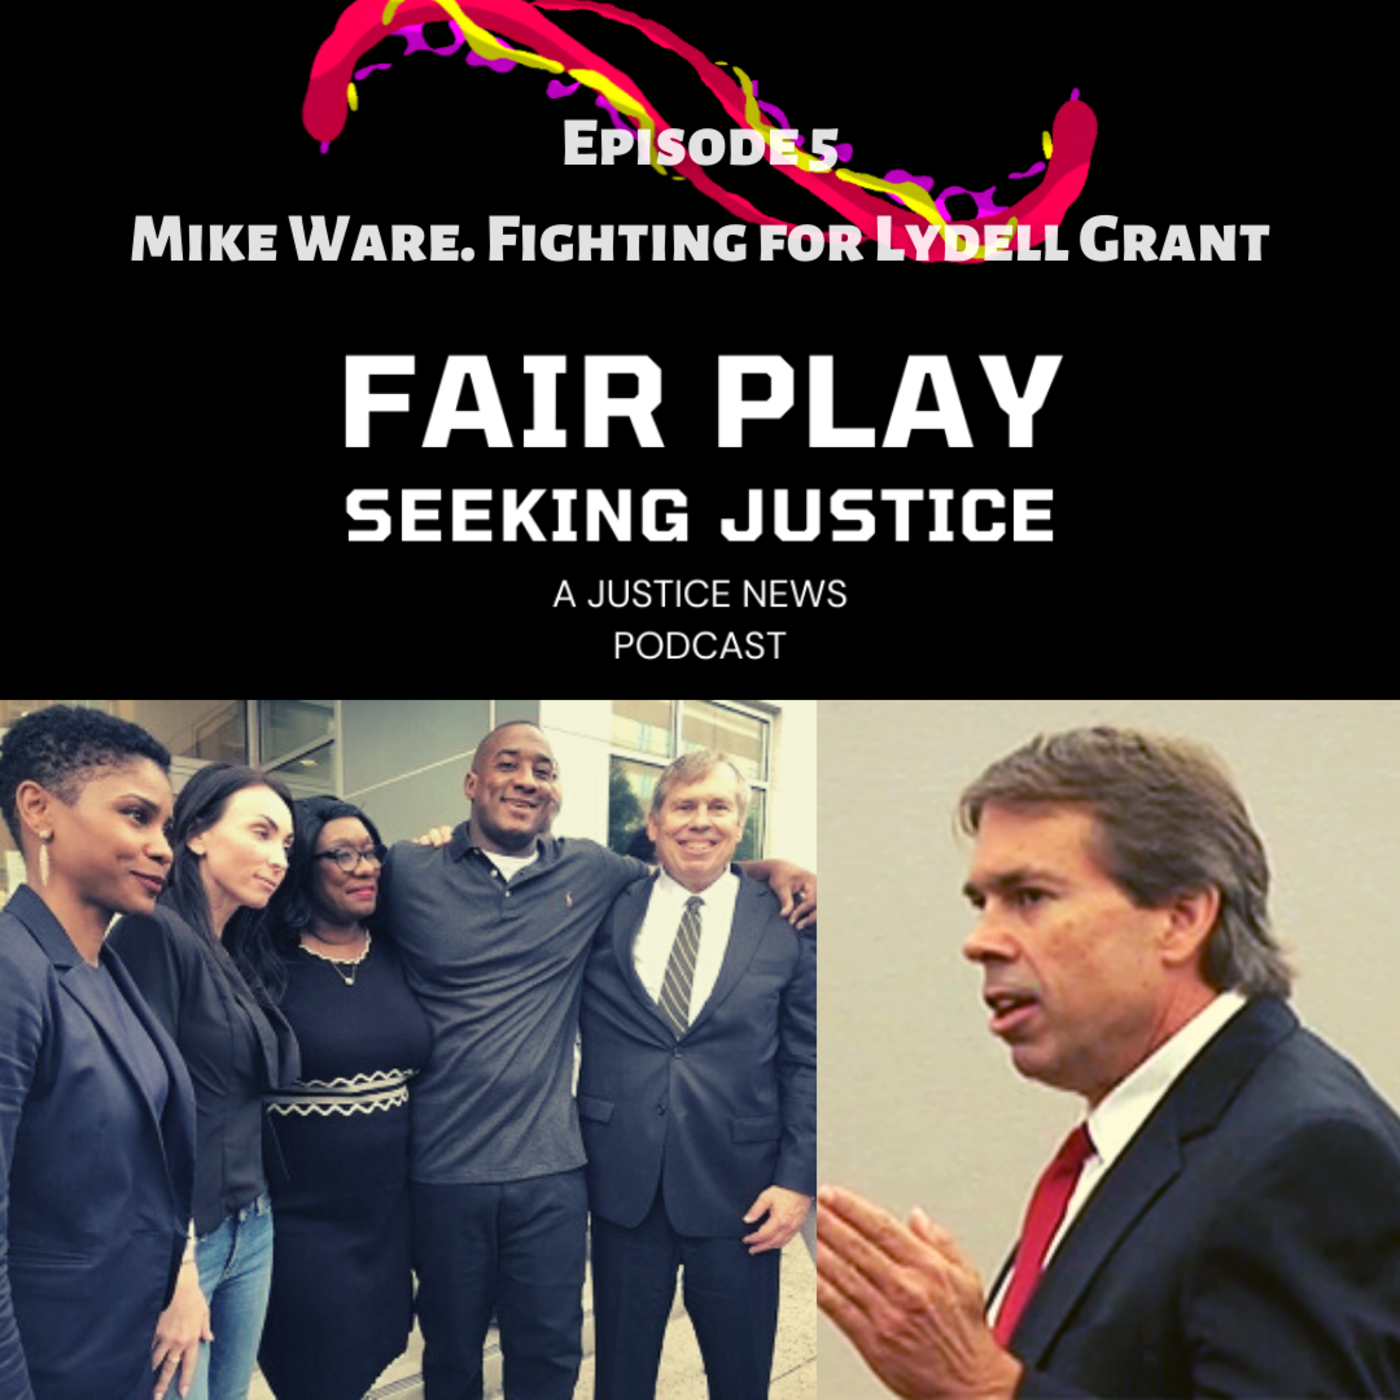 FairPlay EP5 | Mike Ware. Fighting for Lydell Grant